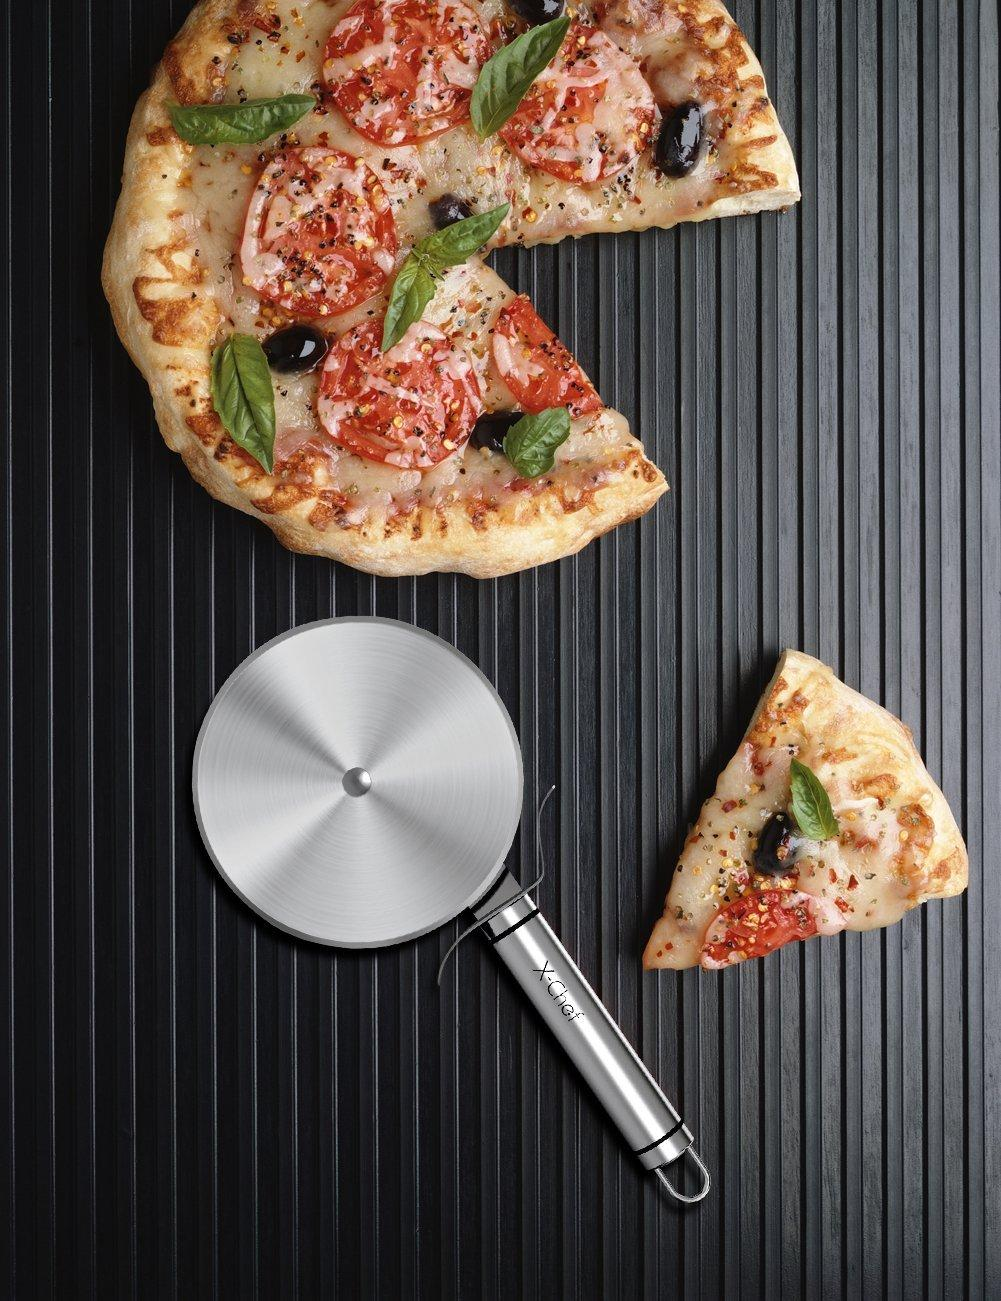 X-Chef Stainless Steel Pizza Cutter Wheel